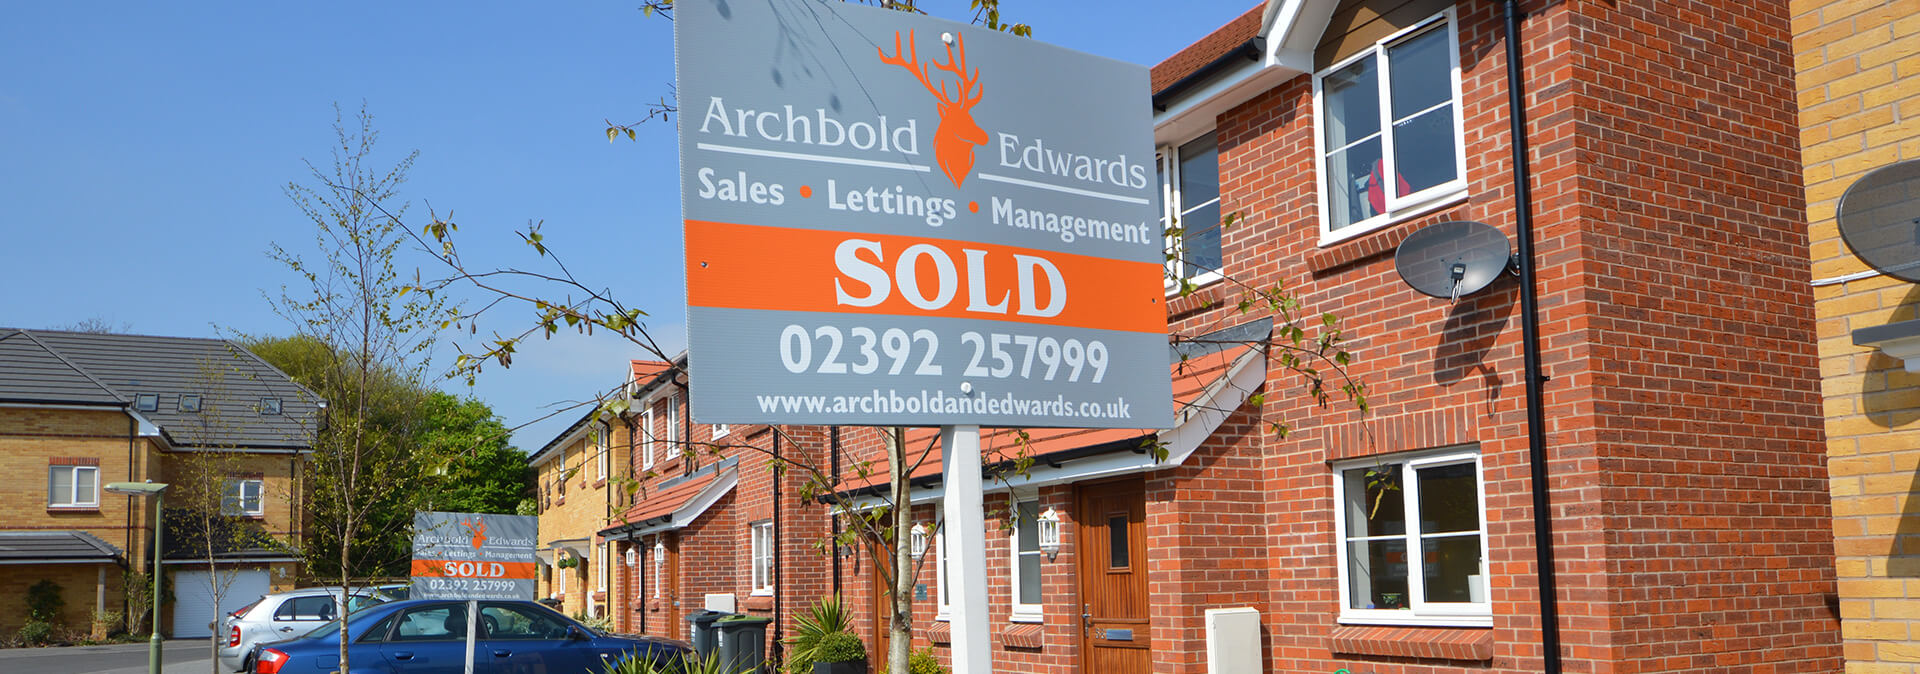 Archbold & Edwards sold boards